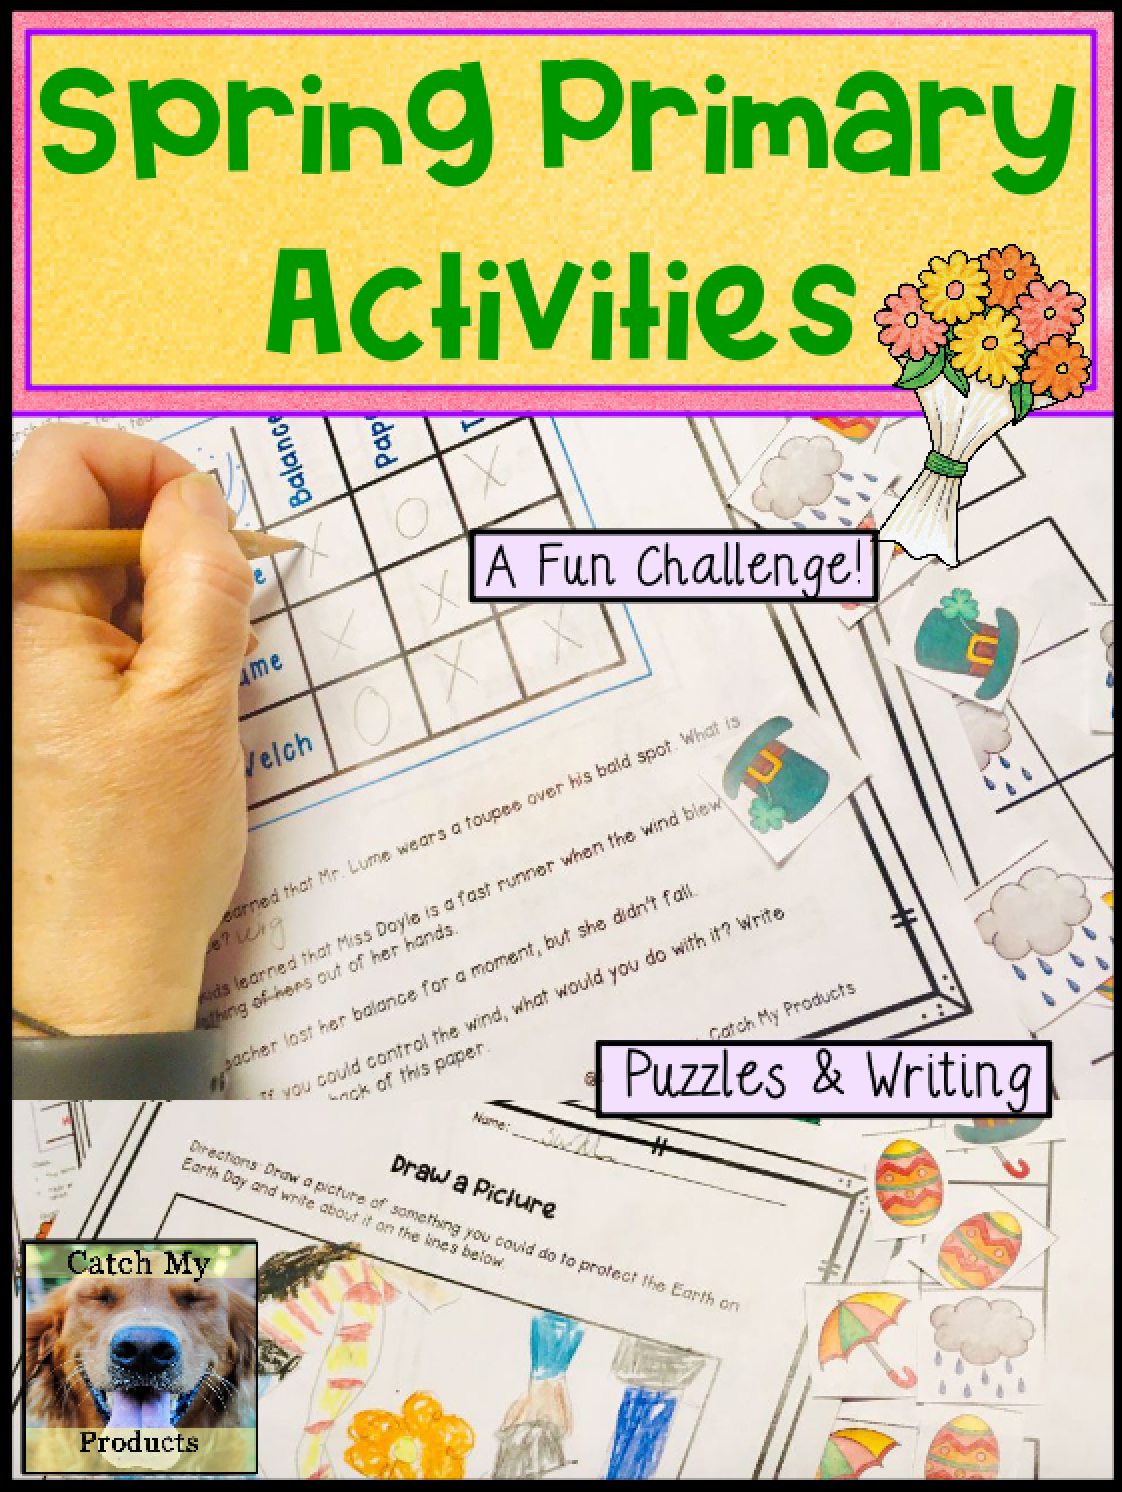 Spring Activity Worksheets In Printable Or Virtual Documents Activities Elementary Fun Learning [ 1492 x 1122 Pixel ]